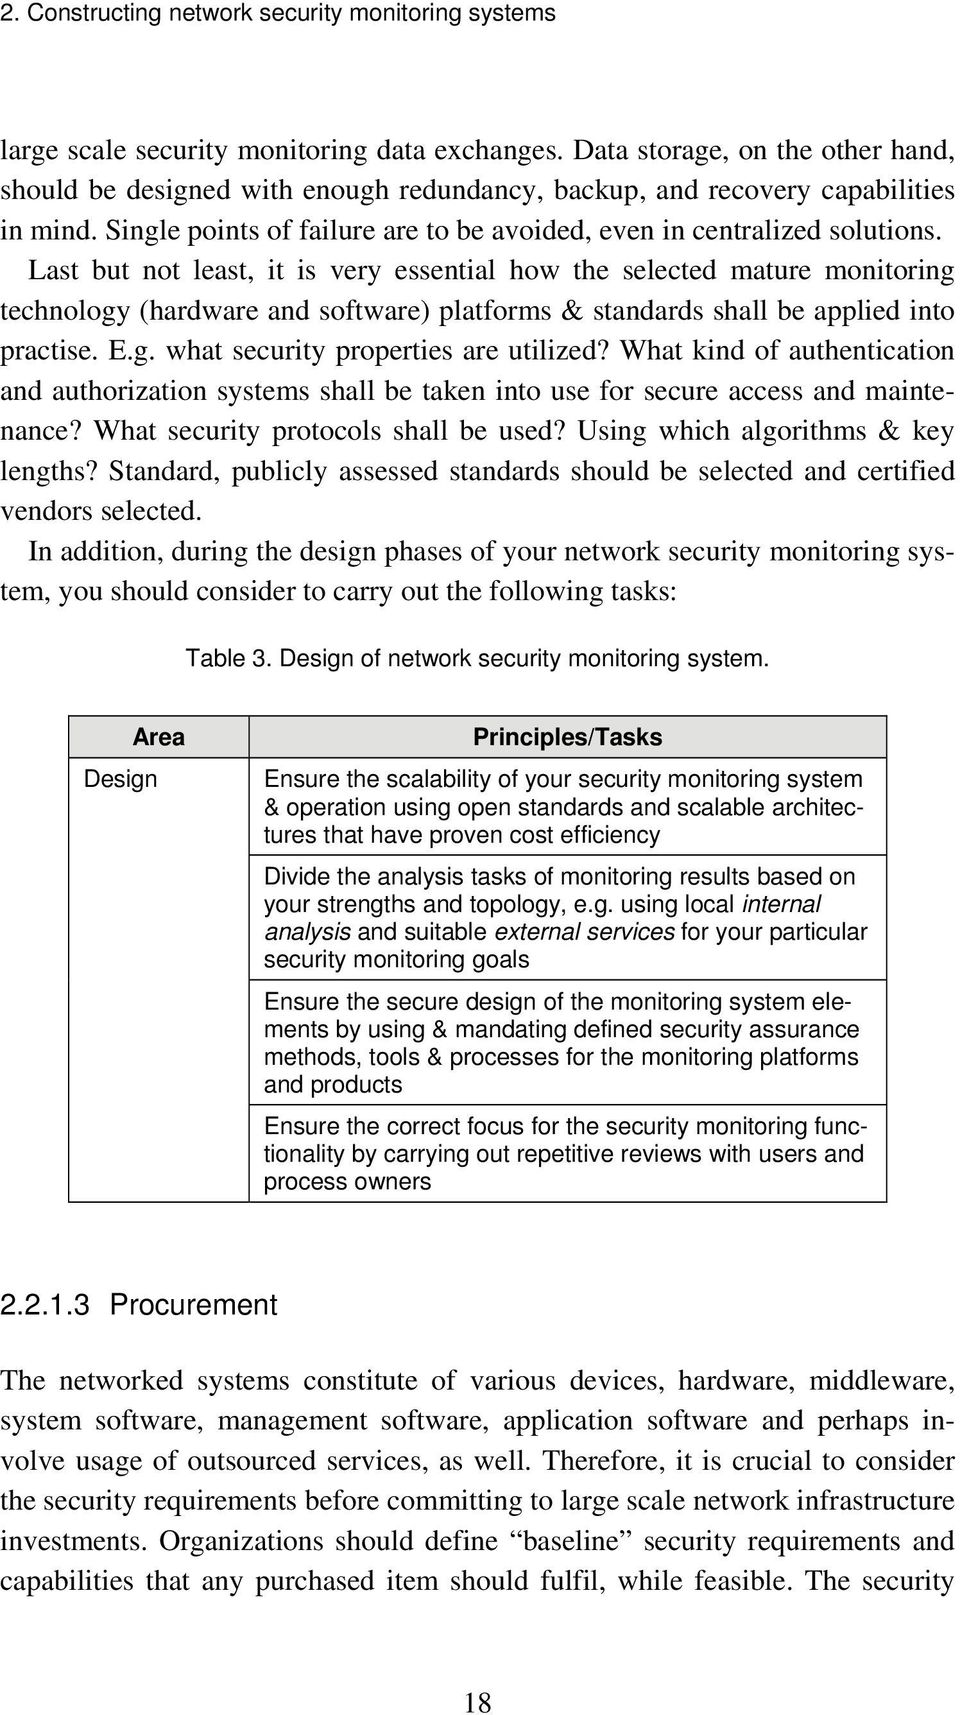 Last but not least, it is very essential how the selected mature monitoring technology (hardware and software) platforms & standards shall be applied into practise. E.g. what security properties are utilized?